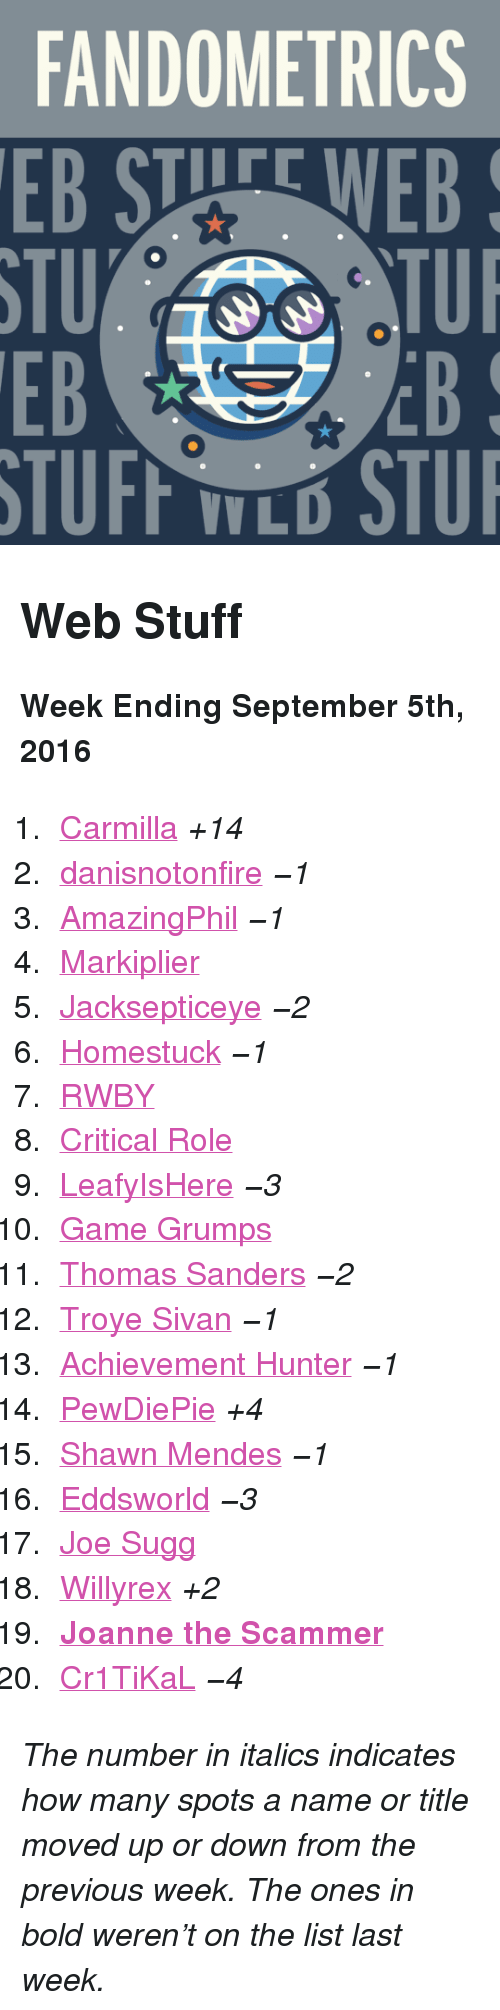 "leafyishere: FANDOMETRICS  EB STUFE WEB  STU  EB  TUI  EB  V L <h2>Web Stuff</h2><p><b>Week Ending September 5th, 2016</b></p><ol><li><a href=""http://www.tumblr.com/search/carmilla"">Carmilla</a> <i>+14</i></li>  <li><a href=""http://www.tumblr.com/search/danisnotonfire"">danisnotonfire</a> <i><i><i>−1</i></i></i></li>  <li><a href=""http://www.tumblr.com/search/amazingphil"">AmazingPhil</a><i> <i><i><i>−1</i></i></i></i></li>  <li><a href=""http://www.tumblr.com/search/markiplier"">Markiplier</a> </li>  <li><a href=""http://www.tumblr.com/search/jacksepticeye"">Jacksepticeye</a> <i><i><i>−2</i></i></i></li>  <li><a href=""http://www.tumblr.com/search/homestuck"">Homestuck</a> <i><i><i>−1</i></i></i></li>  <li><a href=""http://www.tumblr.com/search/rwby"">RWBY</a></li>  <li><a href=""http://www.tumblr.com/search/critical%20role"">Critical Role</a></li>  <li><a href=""http://www.tumblr.com/search/leafyishere"">LeafyIsHere</a> <i><i><i>−3</i></i></i></li>  <li><a href=""http://www.tumblr.com/search/game%20grumps"">Game Grumps</a></li>  <li><a href=""http://www.tumblr.com/search/thomas%20sanders"">Thomas Sanders</a> <i><i><i>−2</i></i></i></li>  <li><a href=""http://www.tumblr.com/search/troye%20sivan"">Troye Sivan</a> <i><i><i>−1</i></i></i></li>  <li><a href=""http://www.tumblr.com/search/achievement%20hunter"">Achievement Hunter</a> <i><i><i>−1</i></i></i></li>  <li><a href=""http://www.tumblr.com/search/pewdiepie"">PewDiePie</a> <i>+4</i></li>  <li><a href=""http://www.tumblr.com/search/shawn%20mendes"">Shawn Mendes</a> <i><i><i>−1</i></i></i></li>  <li><a href=""http://www.tumblr.com/search/eddsworld"">Eddsworld</a> <i><i><i>−3</i></i></i></li>  <li><a href=""http://www.tumblr.com/search/joe%20sugg"">Joe Sugg</a></li>  <li><a href=""http://www.tumblr.com/search/willyrex"">Willyrex</a> <i>+2</i></li>  <li><a href=""http://www.tumblr.com/search/joanne%20the%20scammer""><b>Joanne the Scammer</b></a></li>  <li><a href=""http://www.tumblr.com/search/cr1tikal"">Cr1TiKaL</a> <i><i><i>−4</i></i></i></li></ol><p><i>The number in italics indicates how many spots a name or title moved up or down from the previous week. The ones in bold weren't on the list last week.</i></p>"